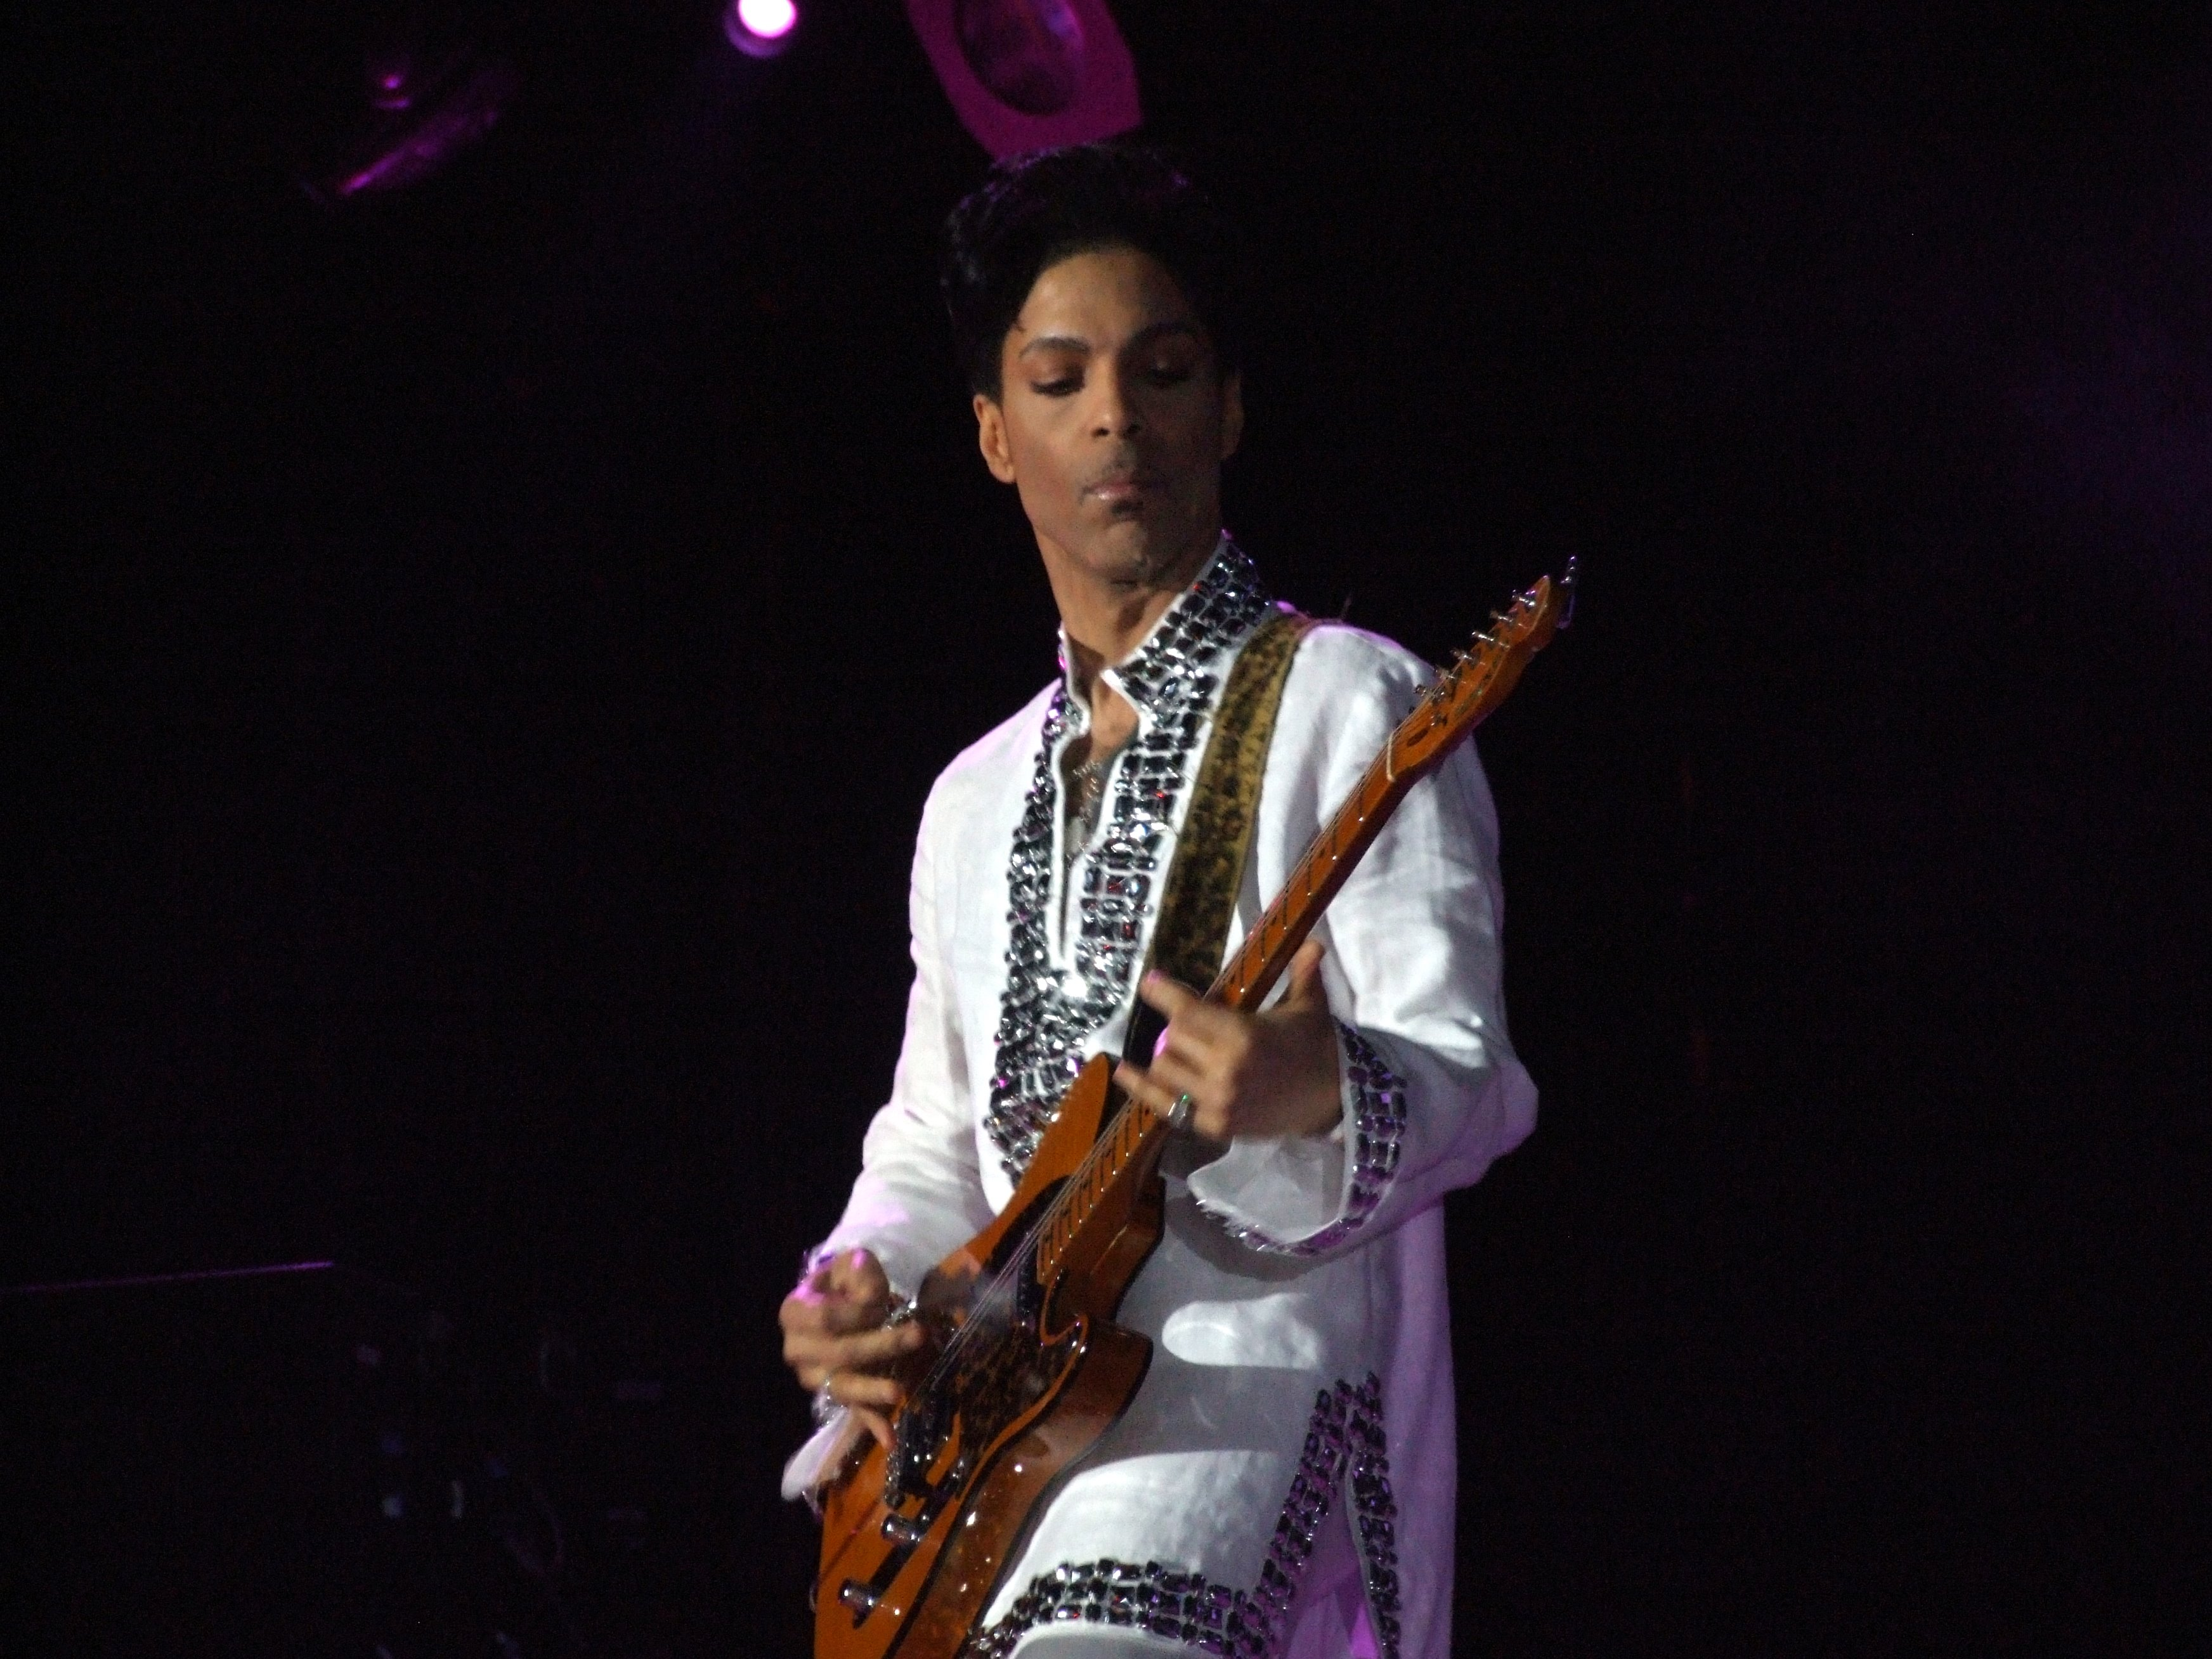 One Of Us? Prince, Sports And The Enduring Underdog